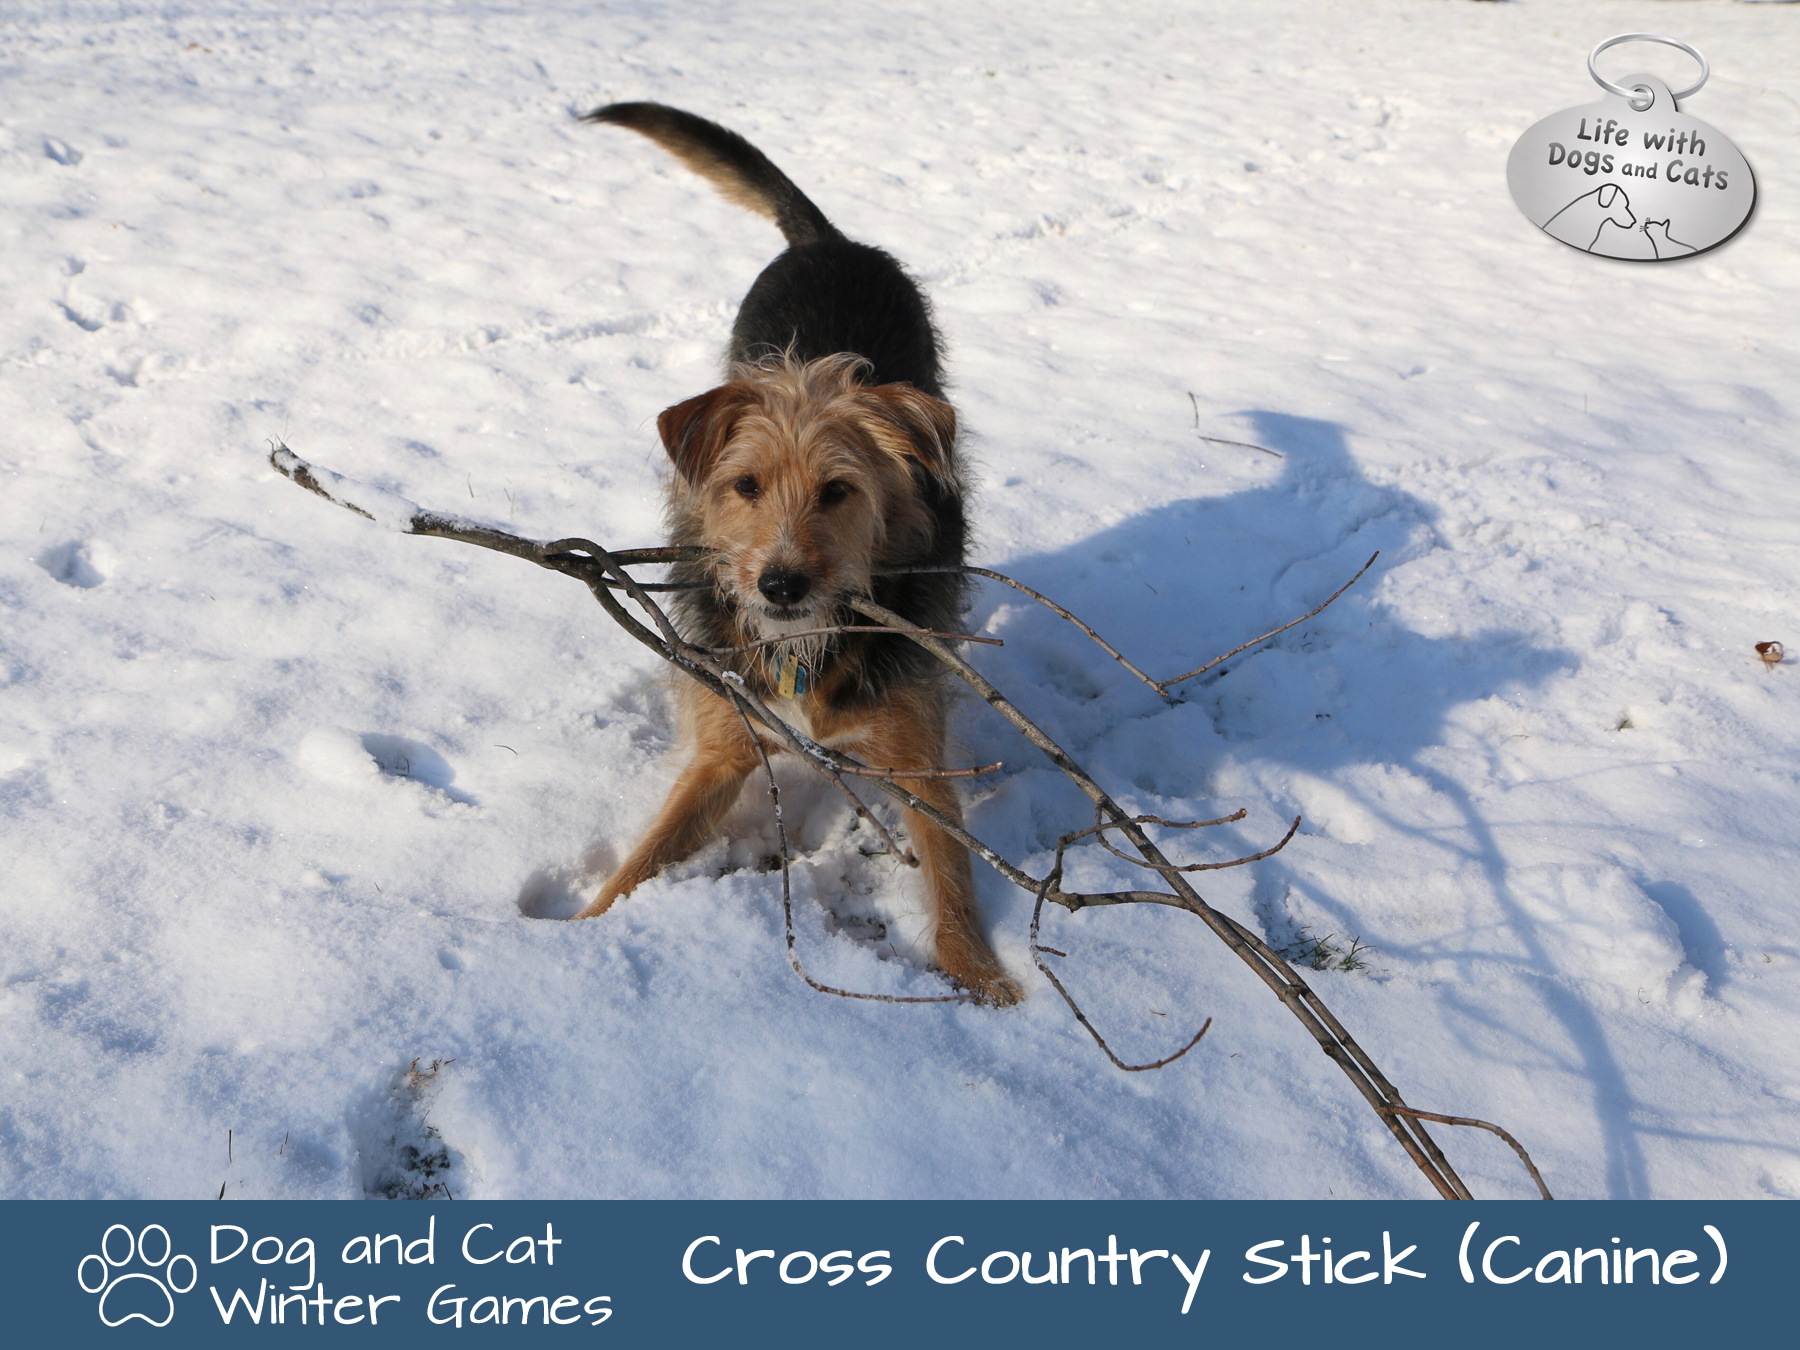 Dog and Cat Winter Games: Cross Country Stick